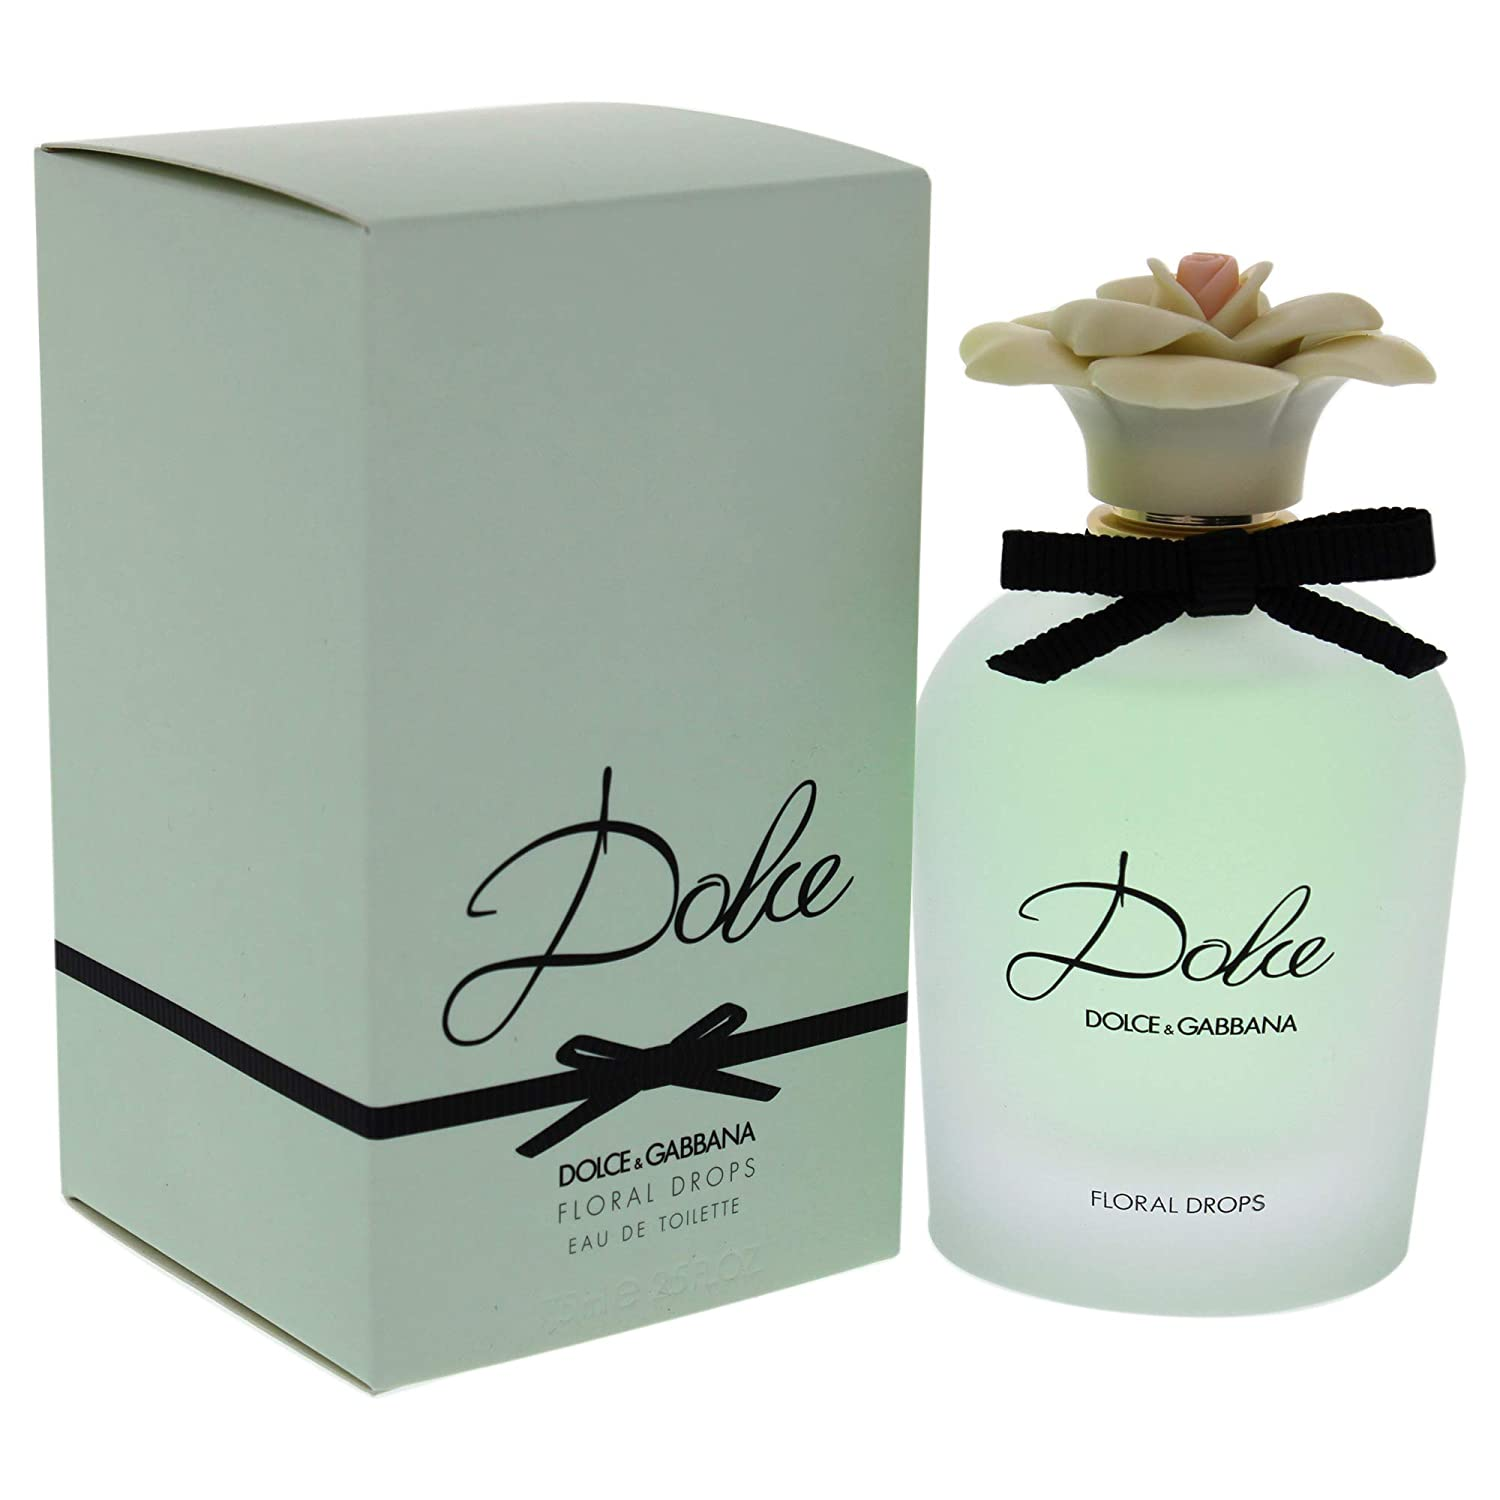 Dolce and Gabbana Floral Drops for Women